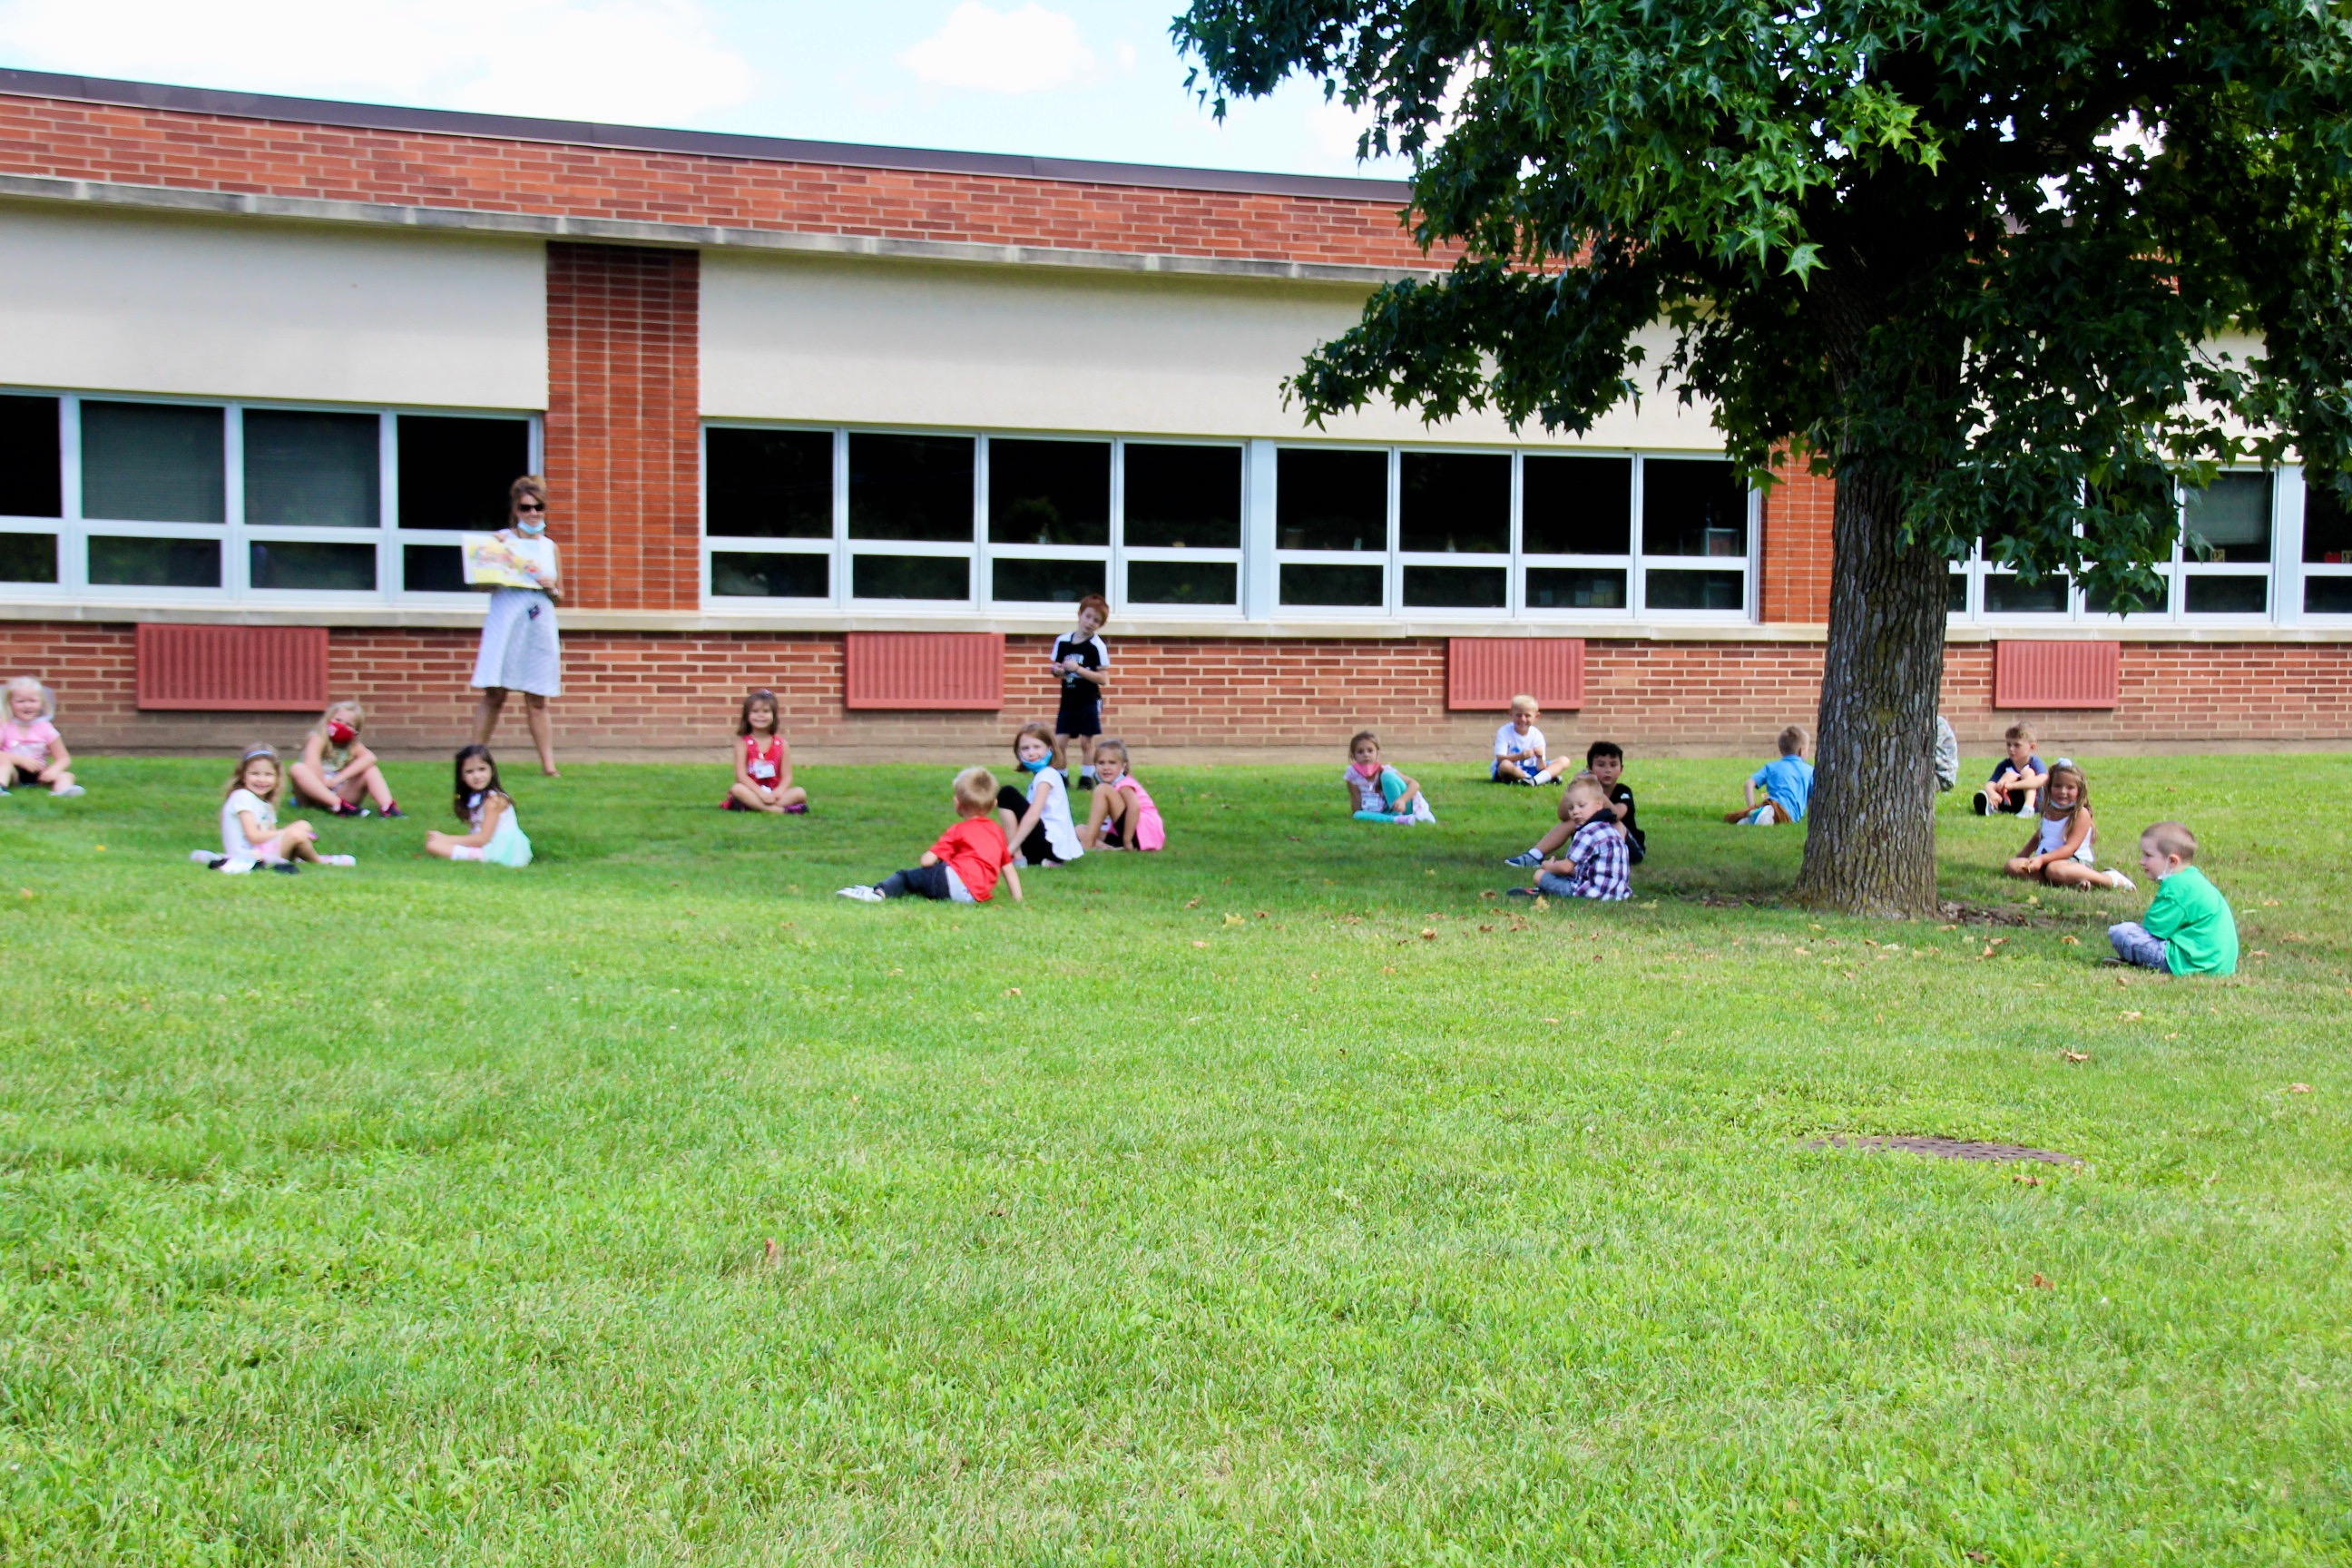 Story time gets even better when enjoyed outdoors on a perfect summer day!